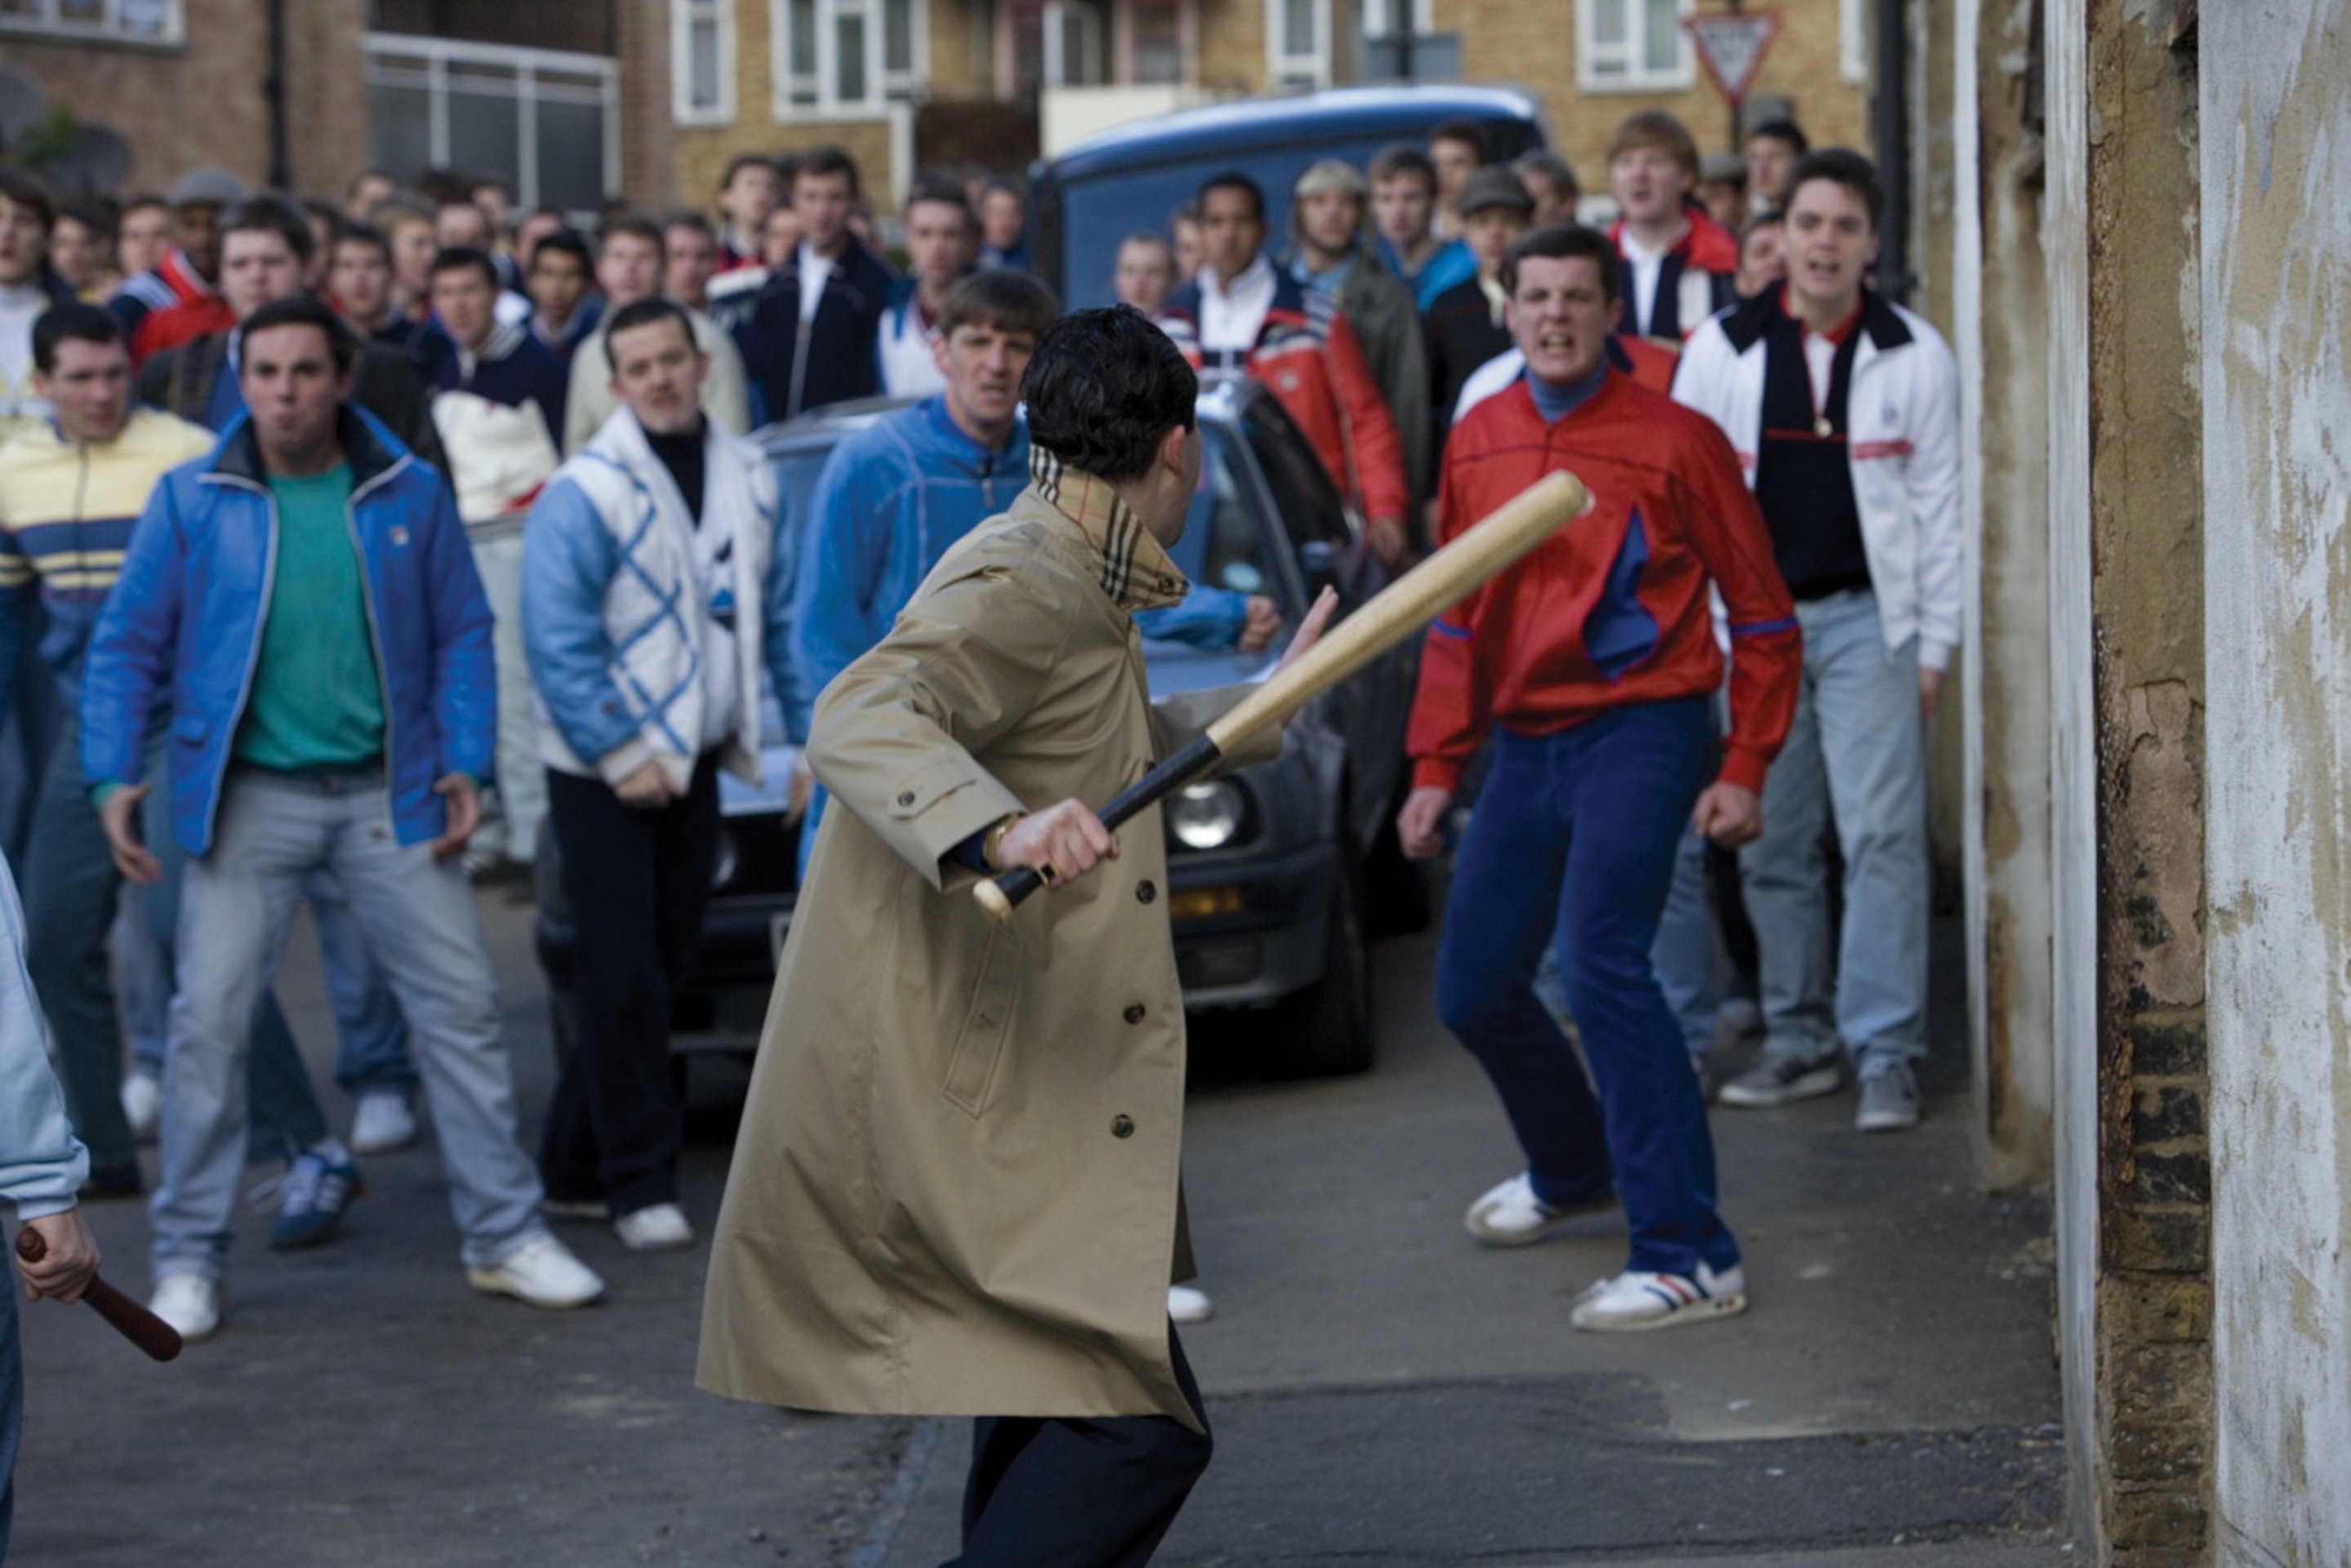 football hooligans Definition of football hooliganismin accordance with the work a dictionary of law, this is a description of football hooliganism : the sporting events (control of alcohol etc) act 1985 contains finable offences of possessing alcohol.